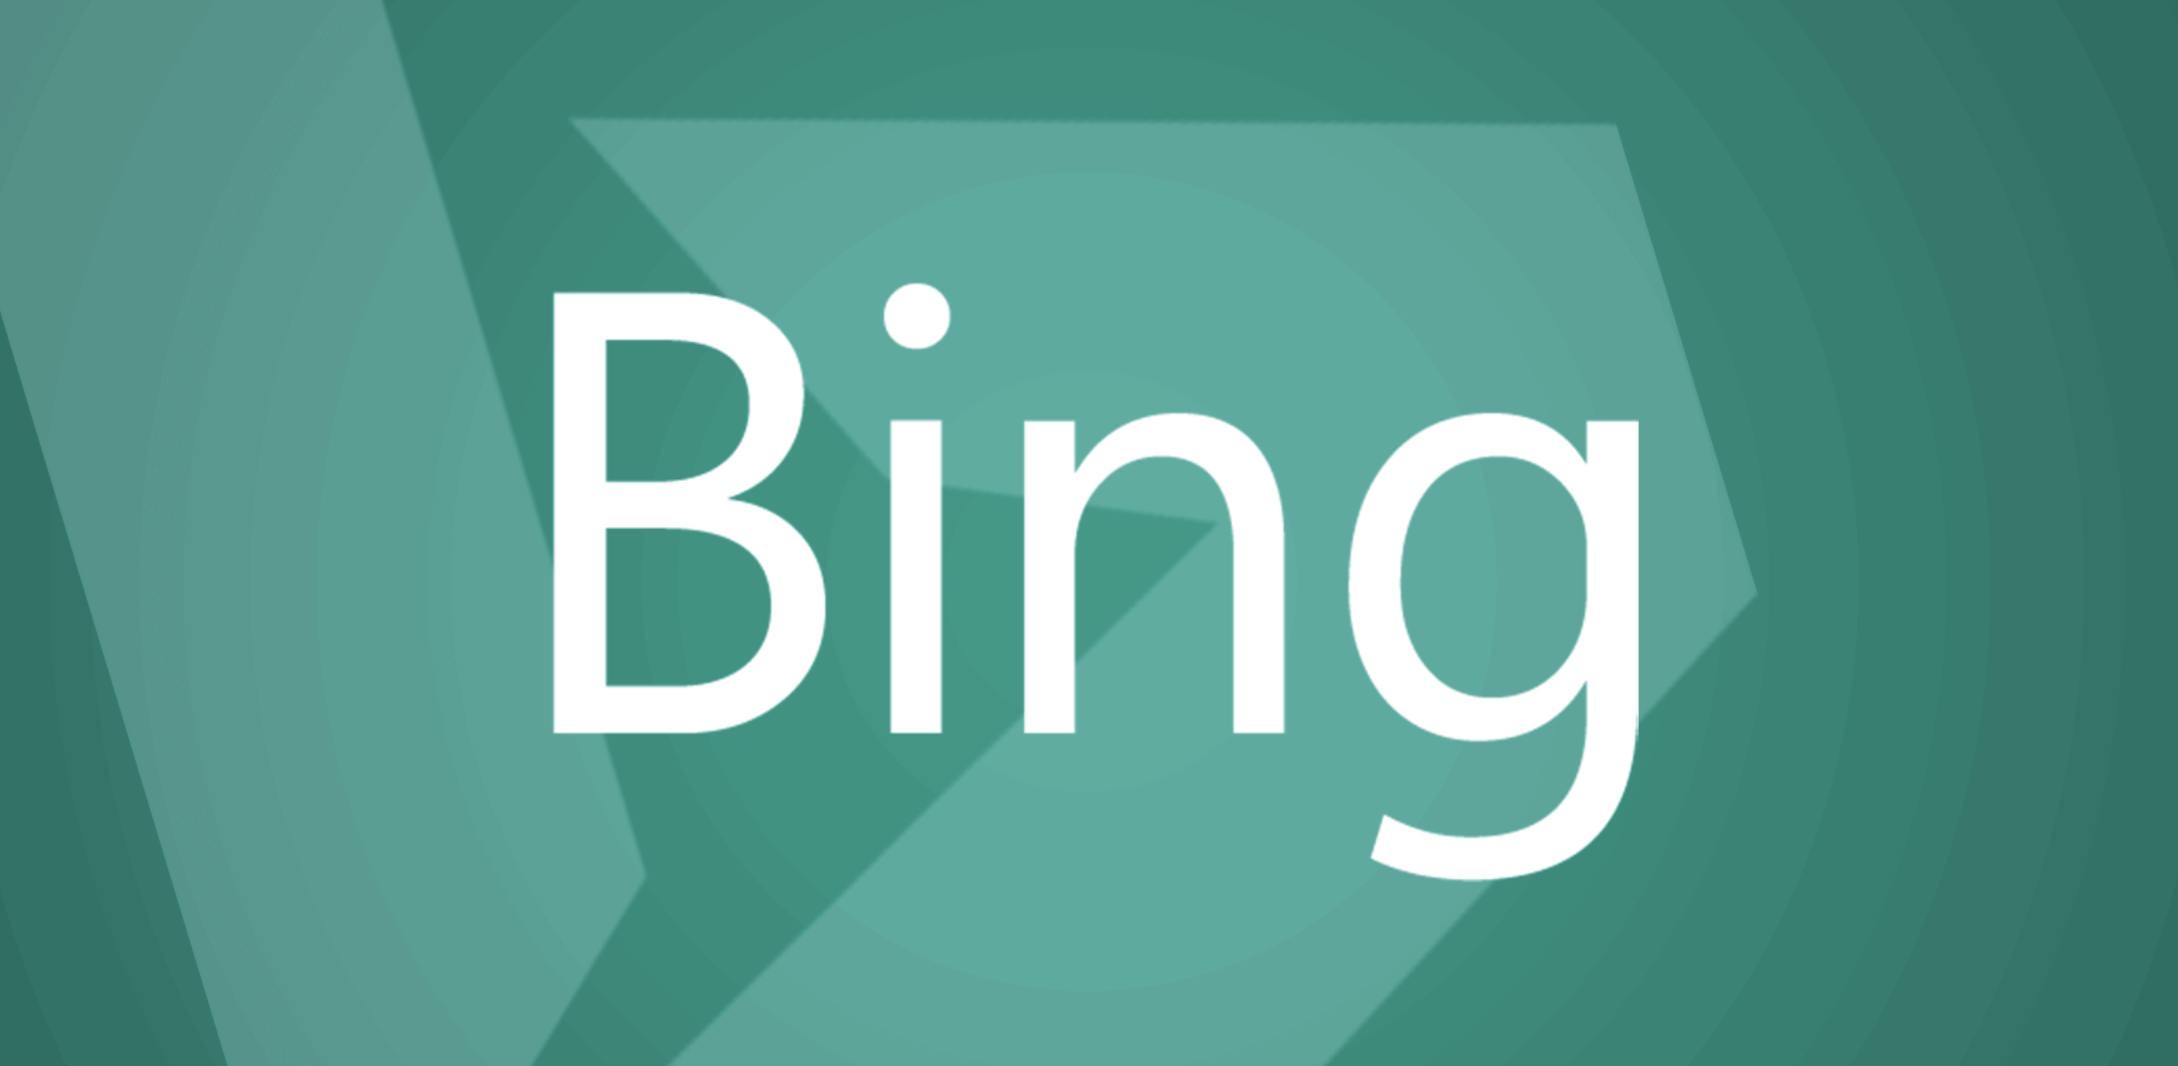 bing-ads-2018-png.2913